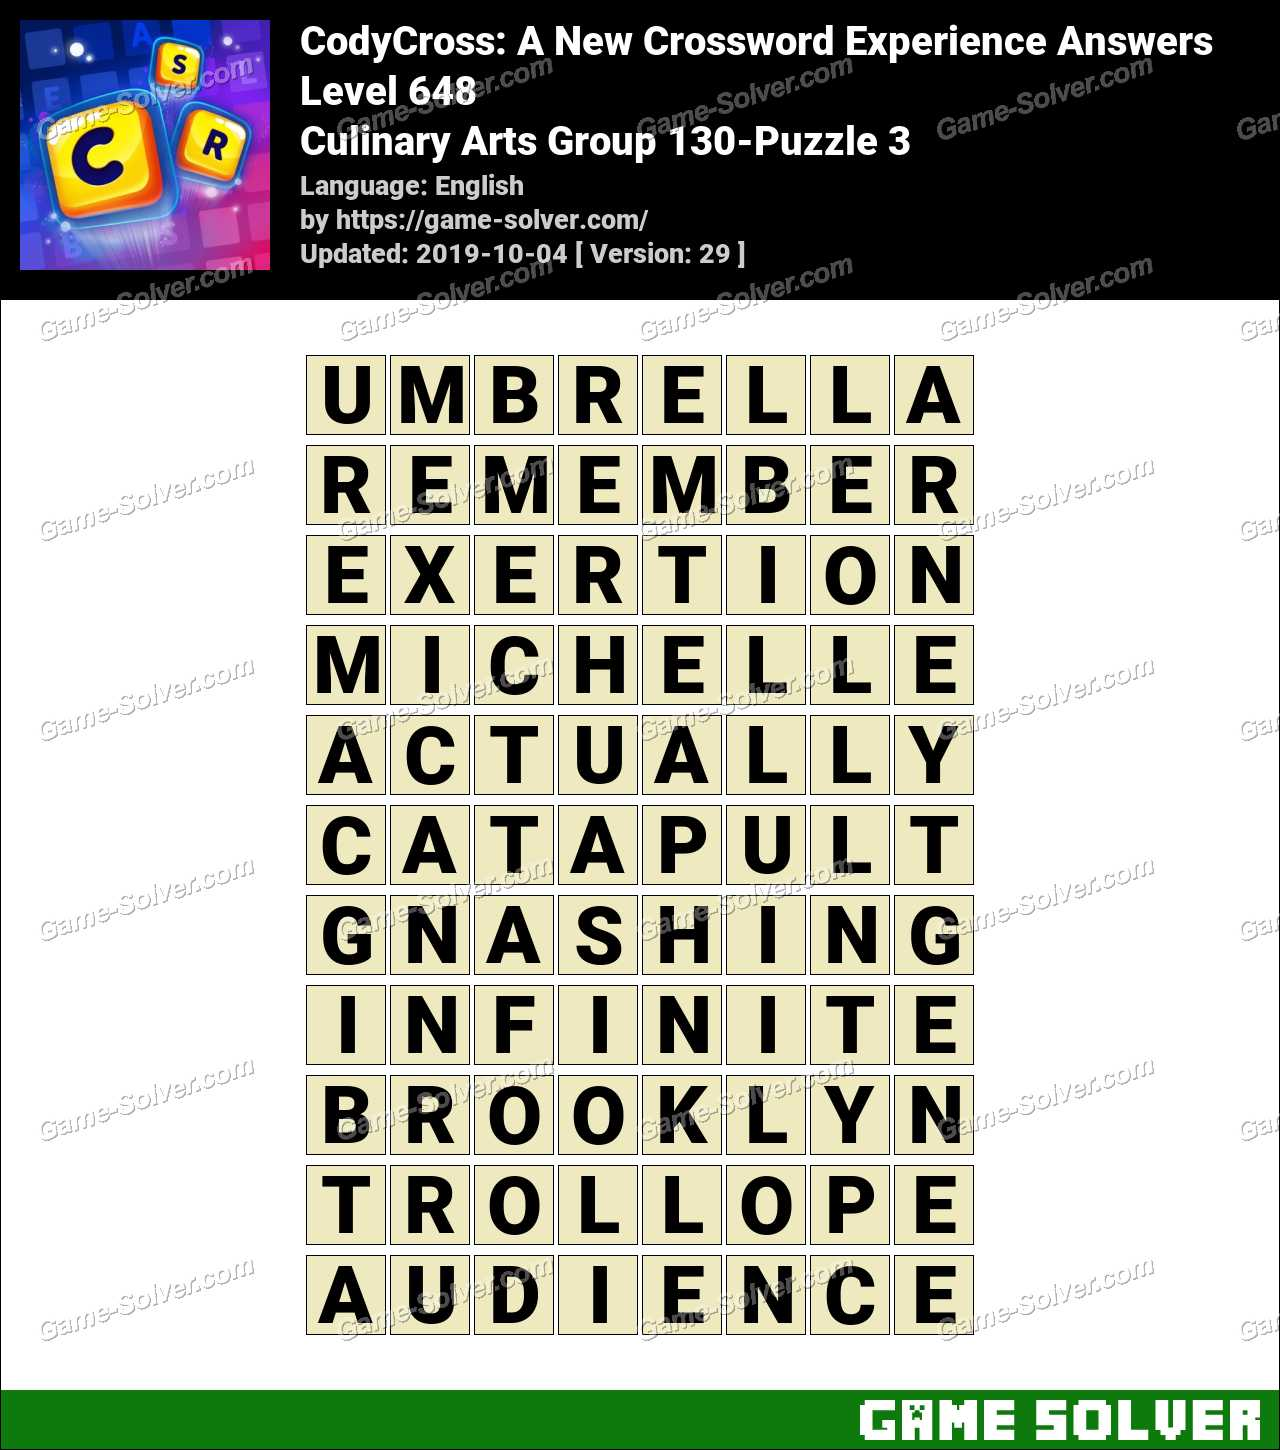 CodyCross Culinary Arts Group 130-Puzzle 3 Answers